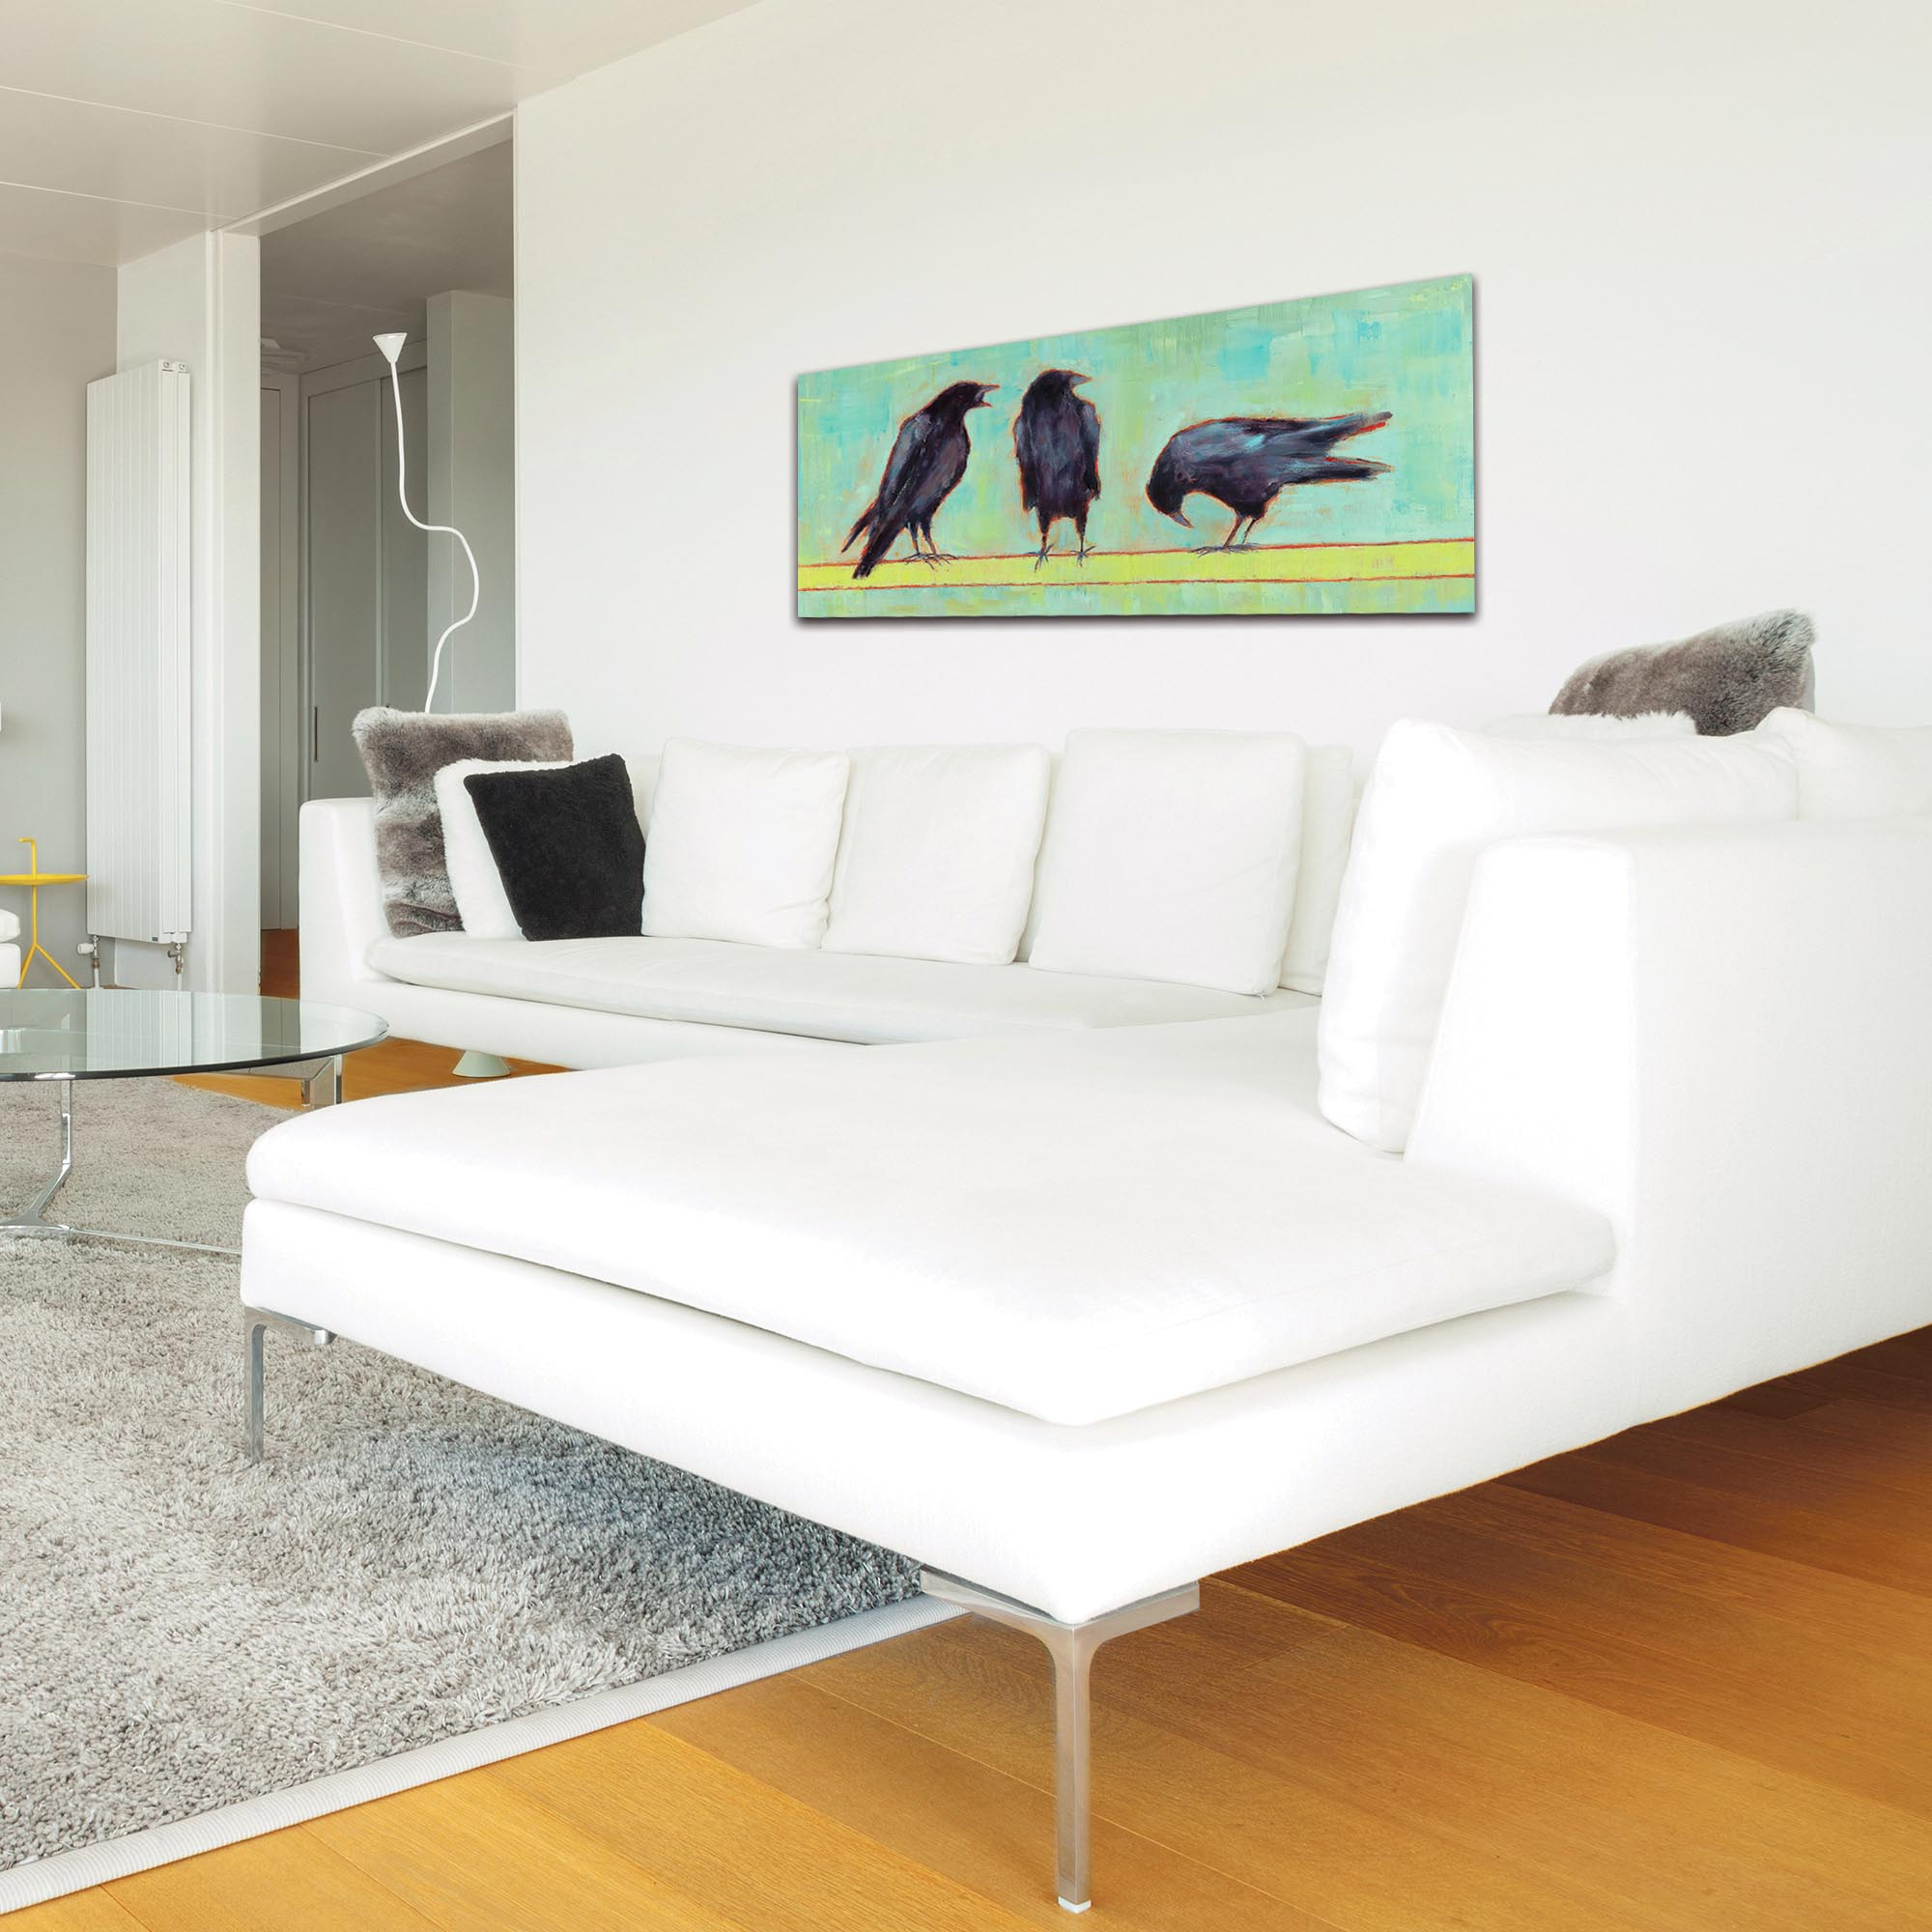 Contemporary Wall Art 'Crow Bar 1 v2' - Urban Birds Decor on Metal or Plexiglass - Lifestyle View